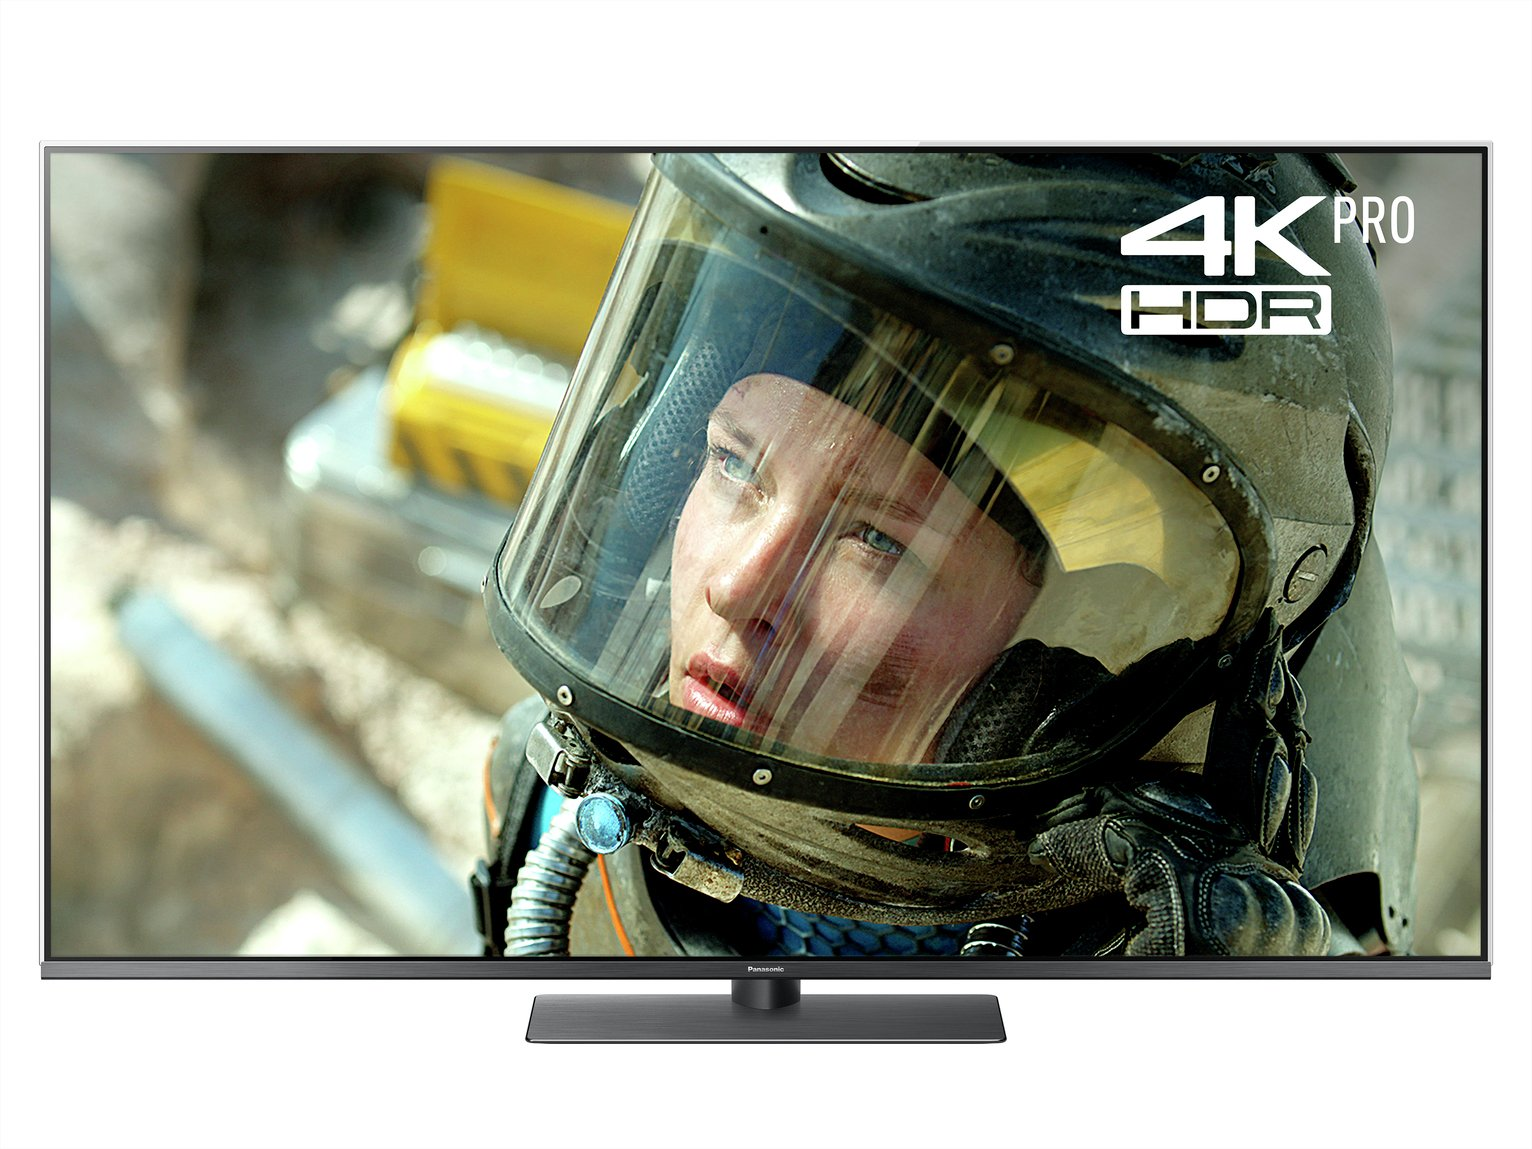 Panasonic Panasonic 49 Inch TX-49FX750B Smart 4K UHD TV with HDR